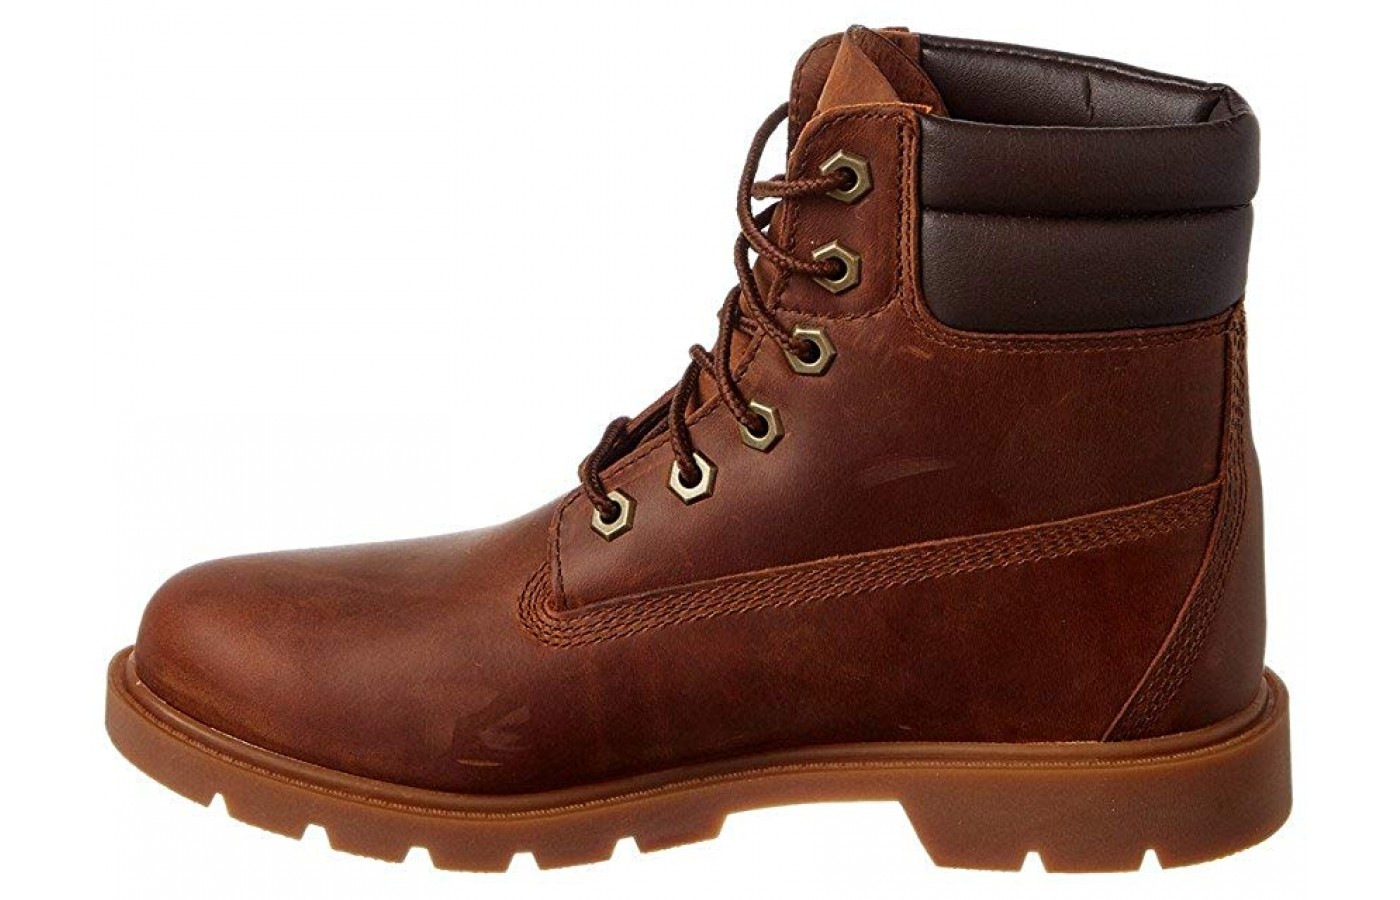 Timberland Womens Linden Woods Instep